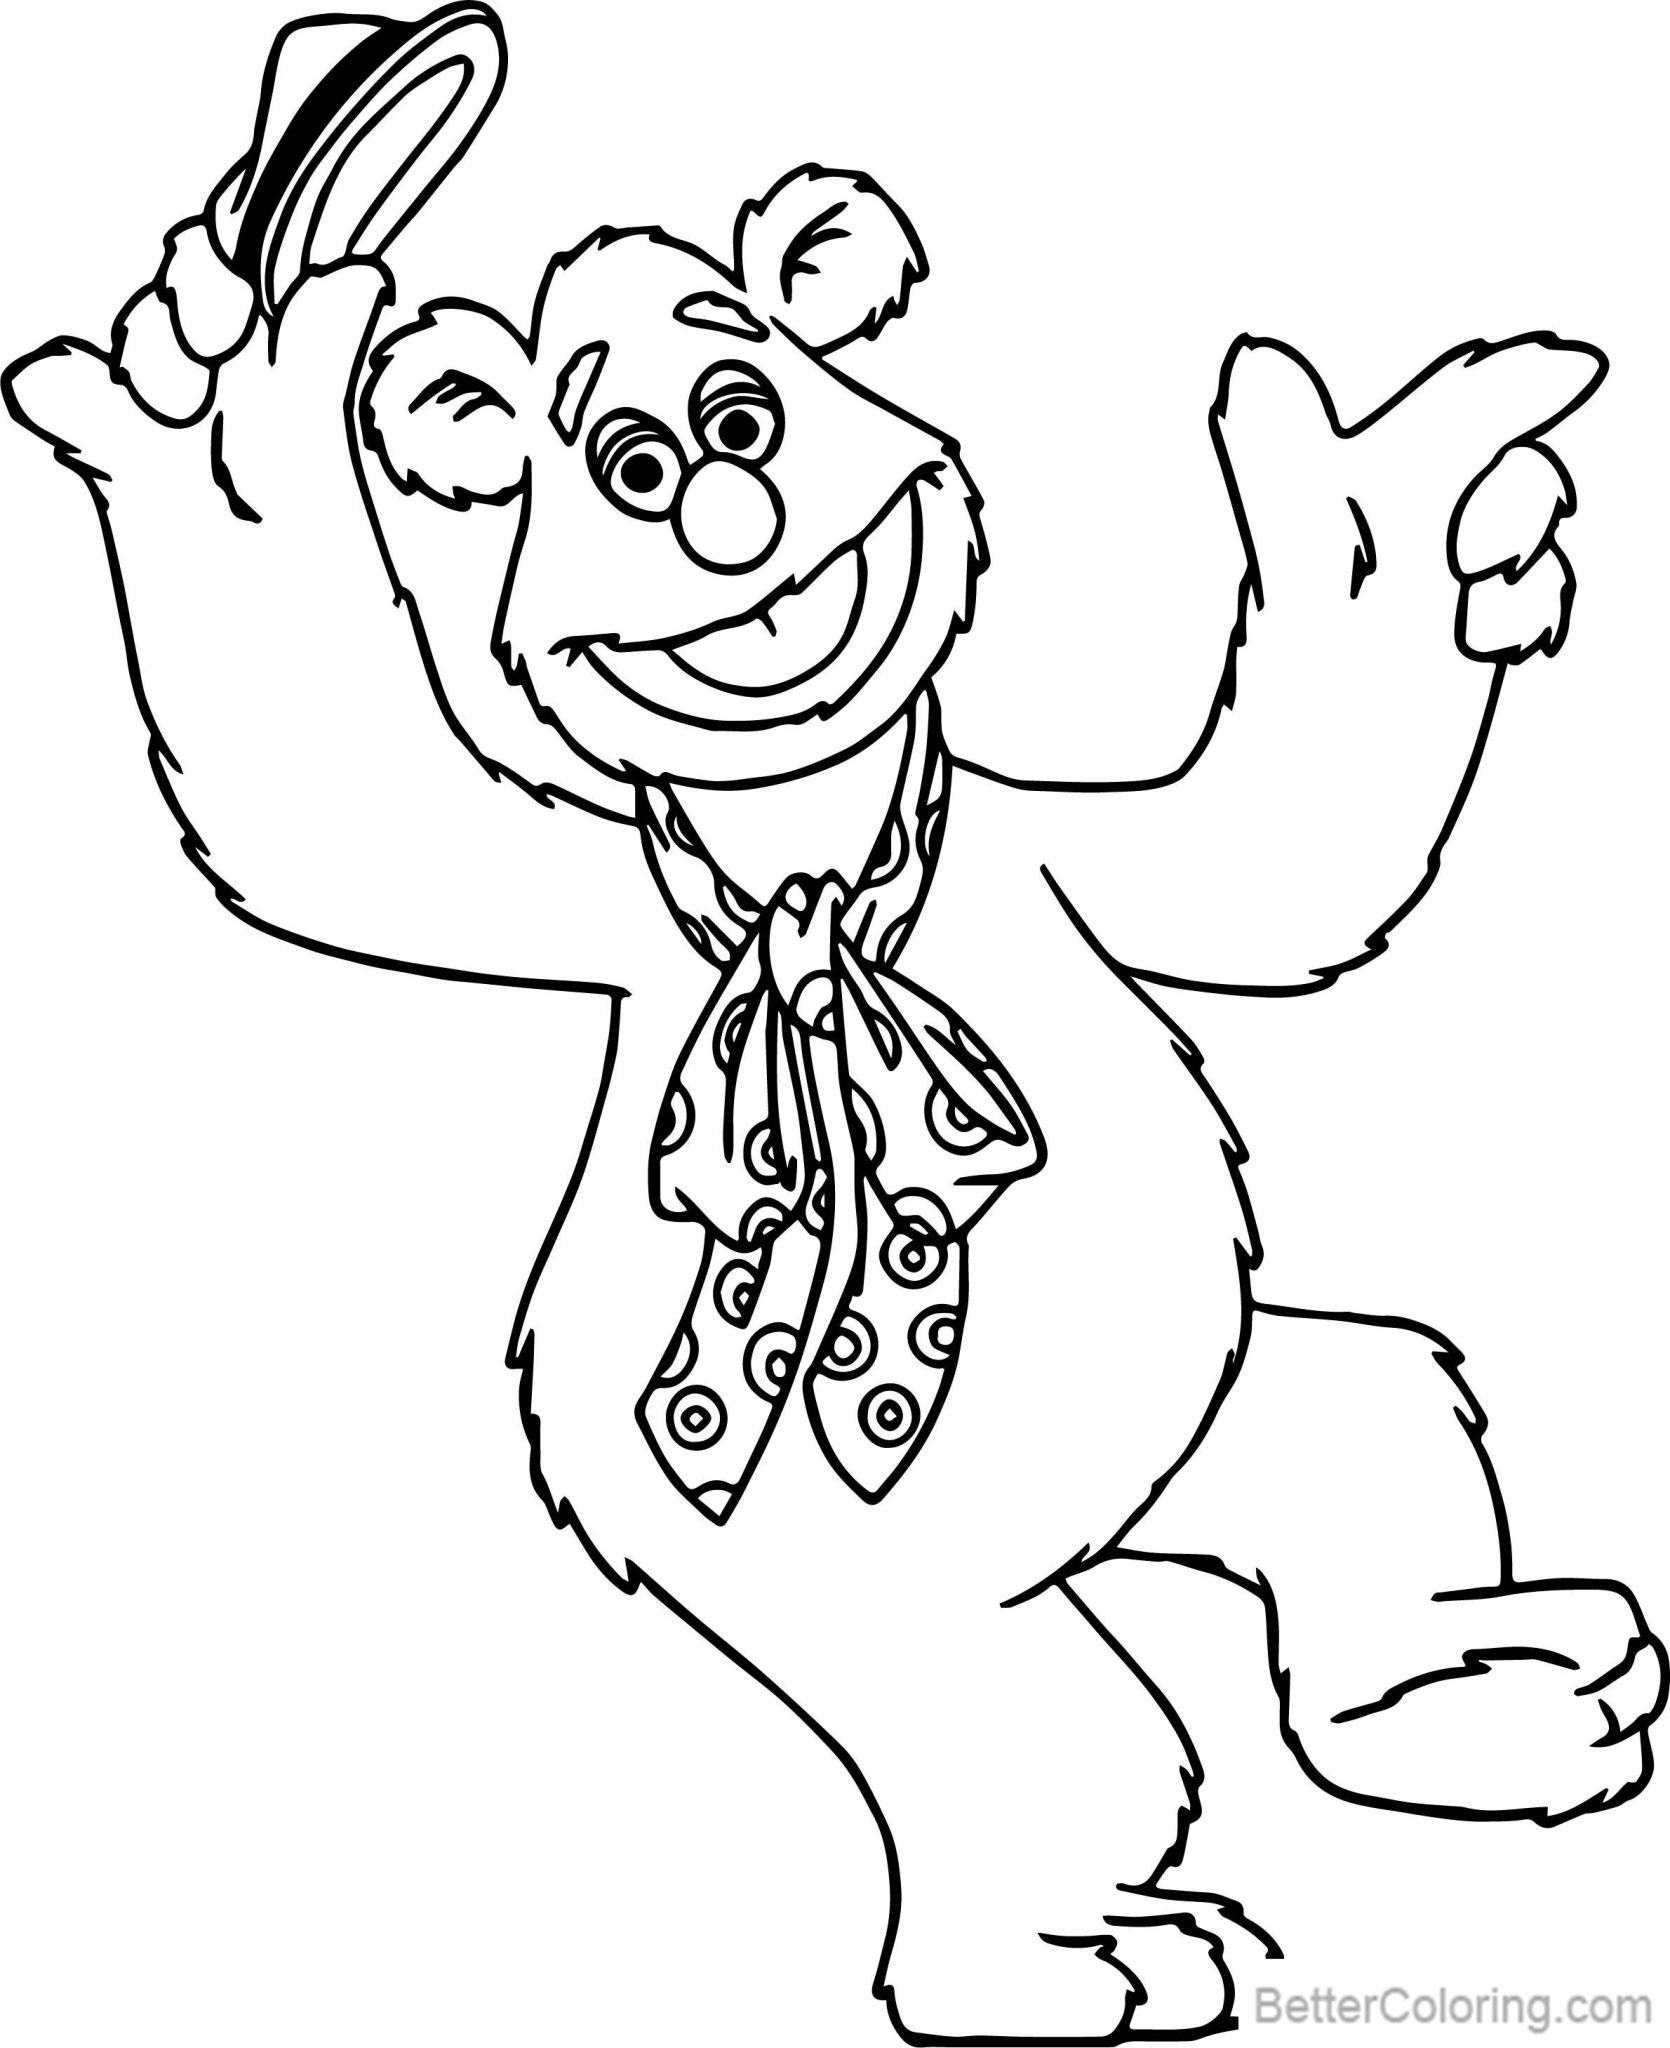 Muppet Babies Coloring Pages Bear with Hat - Free Printable Coloring ...